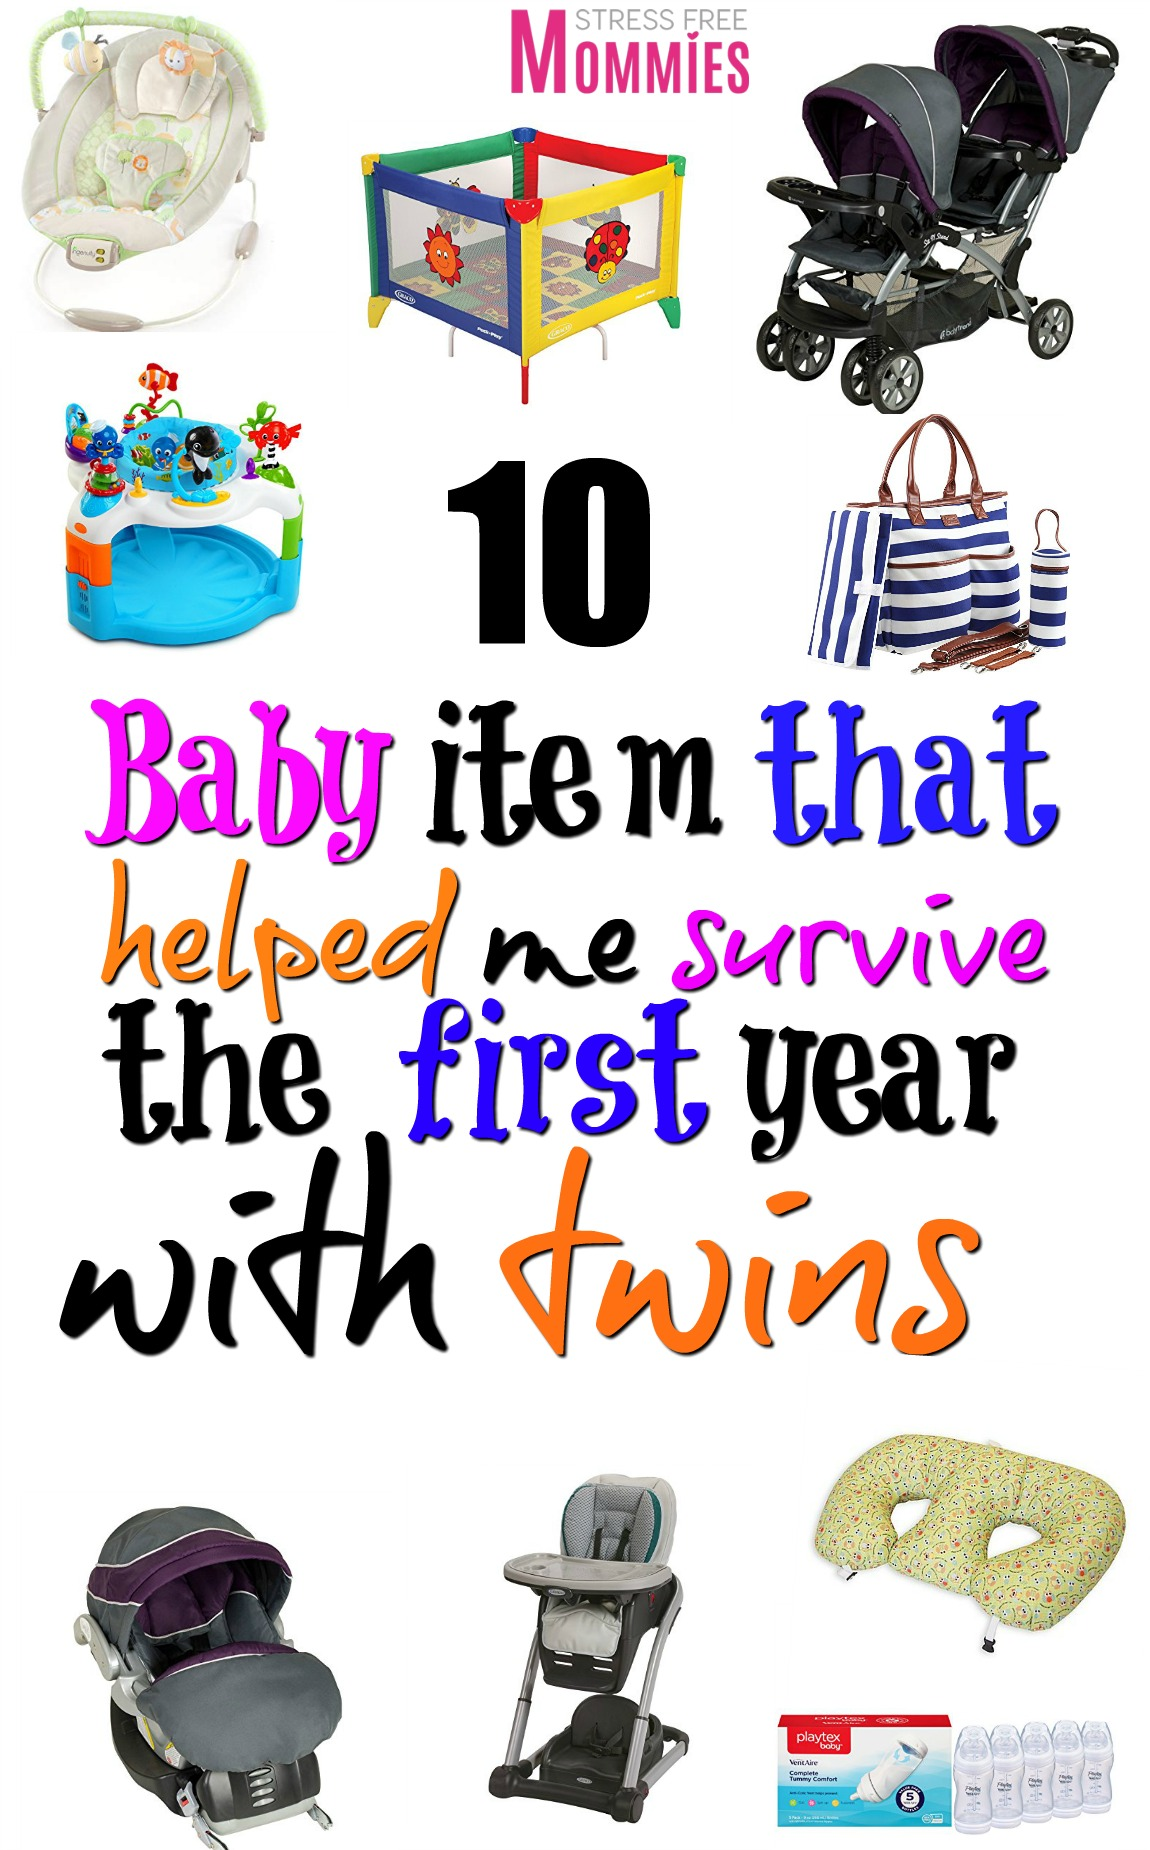 The 10 baby items that helped me survive the first year with twins